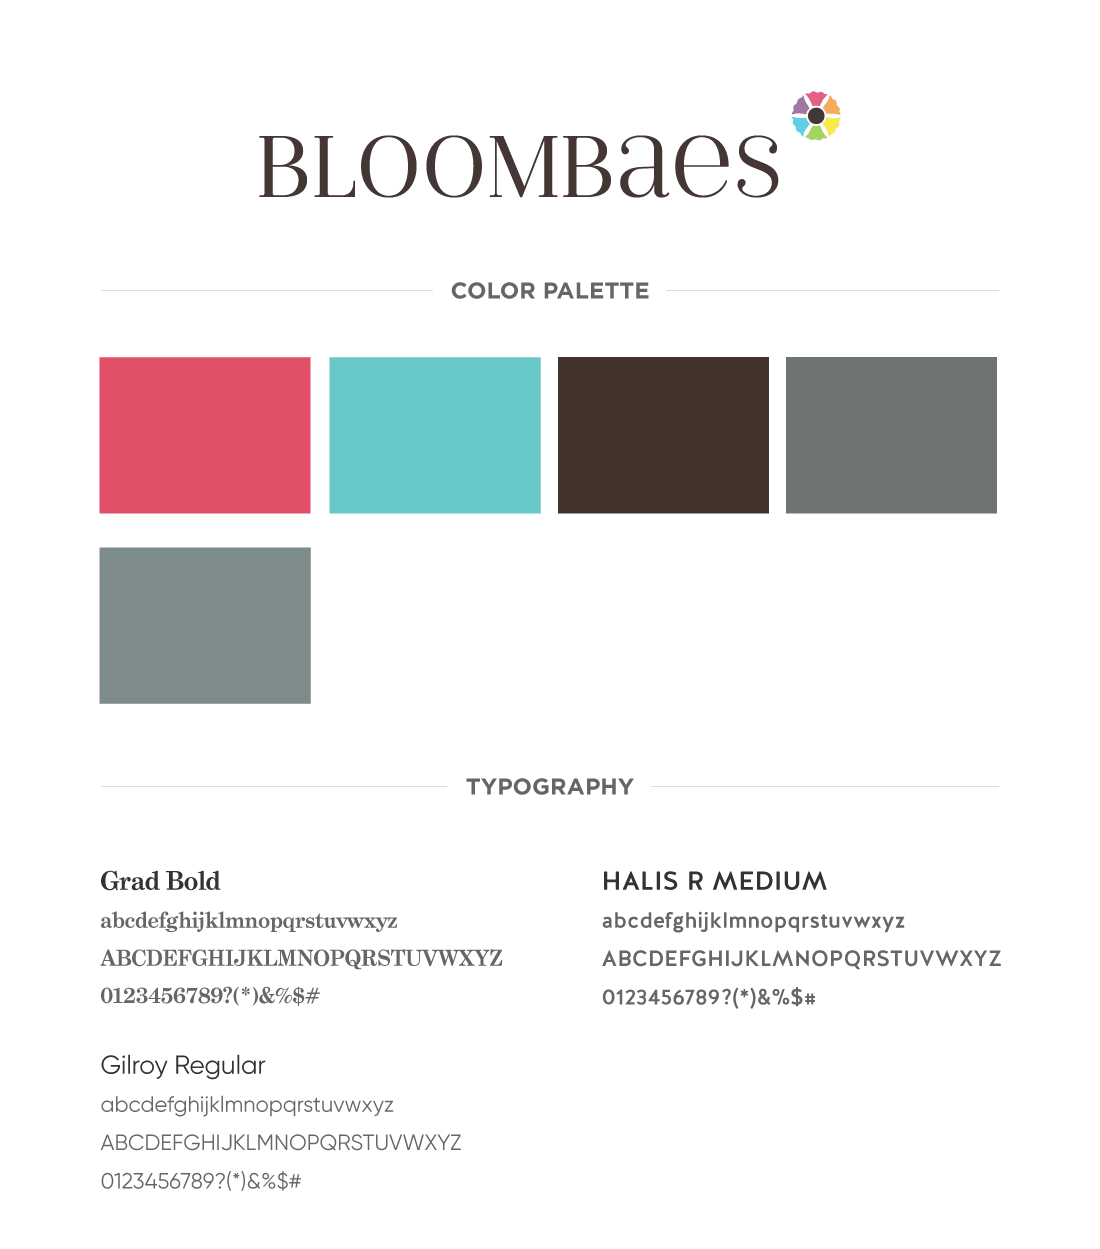 Bloombaes Case Study Style Guide